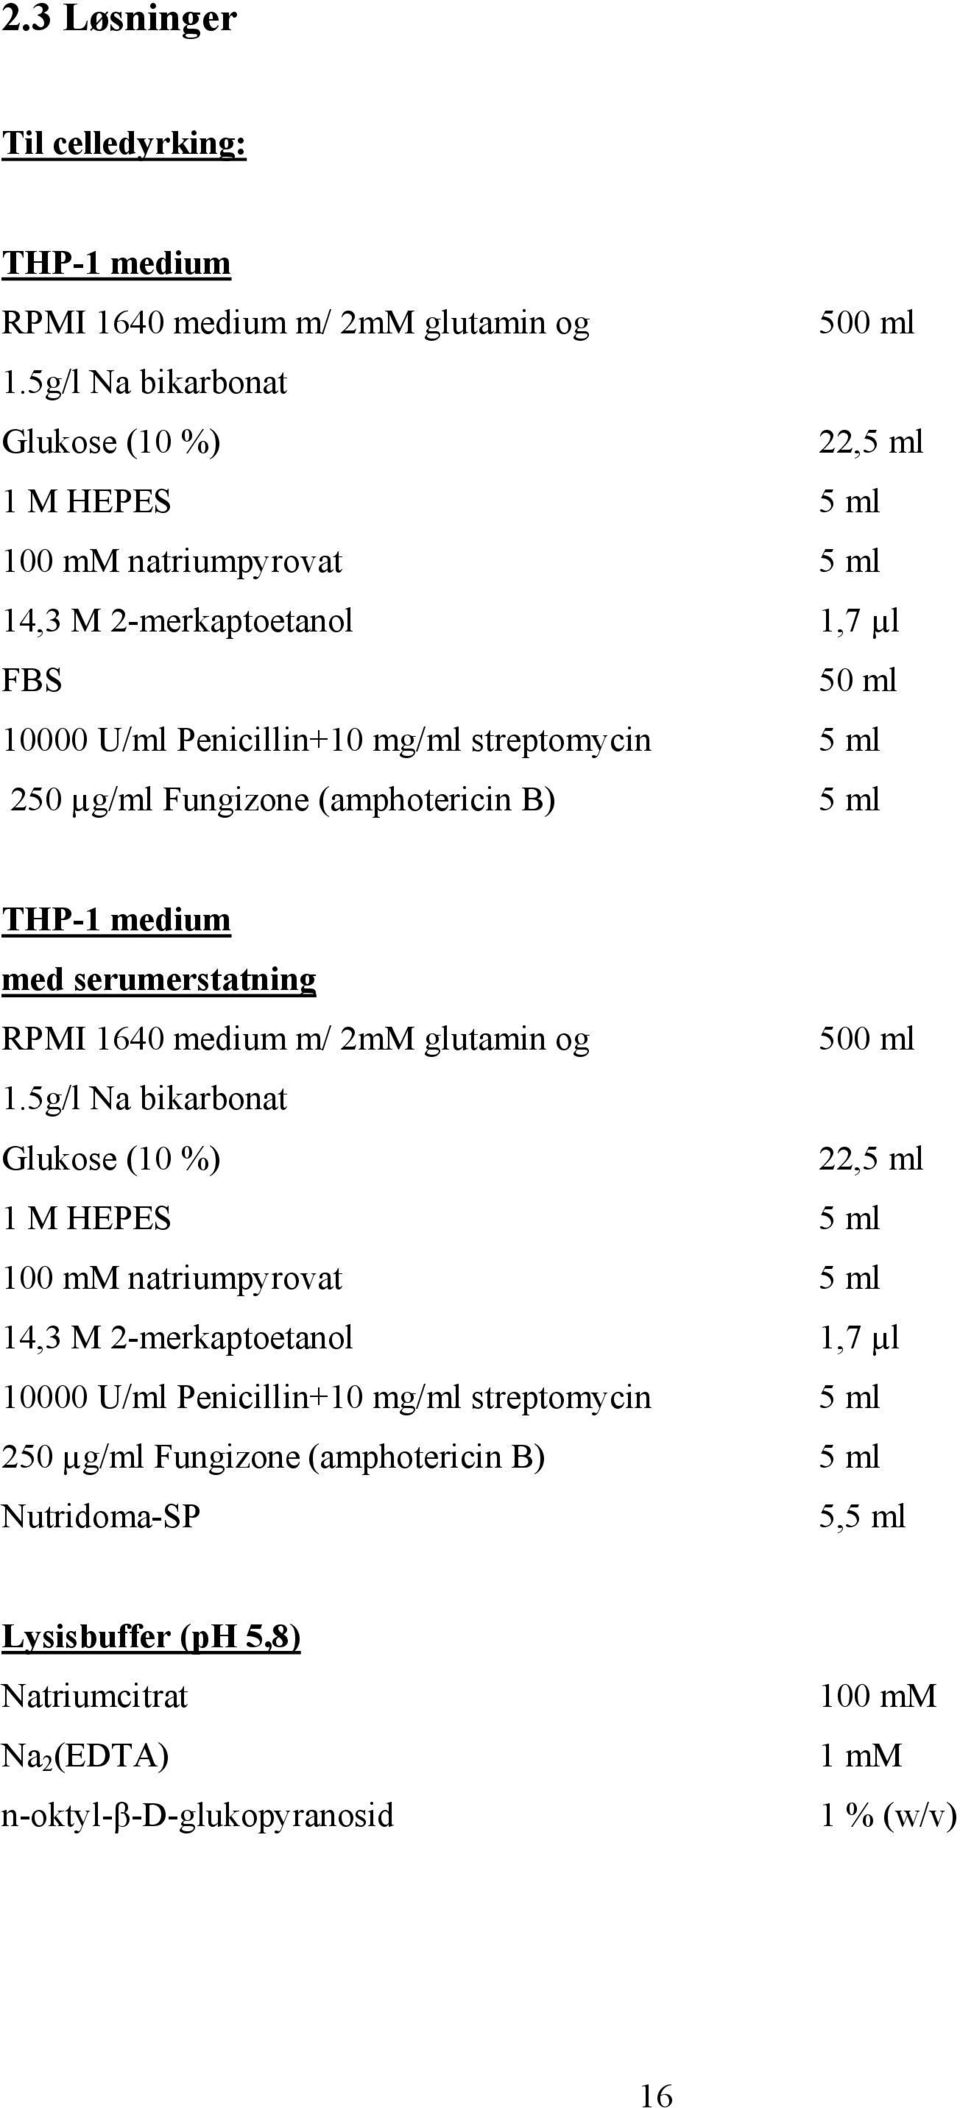 250 µg/ml Fungizone (amphotericin B) 5 ml THP-1 medium med serumerstatning RPMI 1640 medium m/ 2mM glutamin og 500 ml 1.